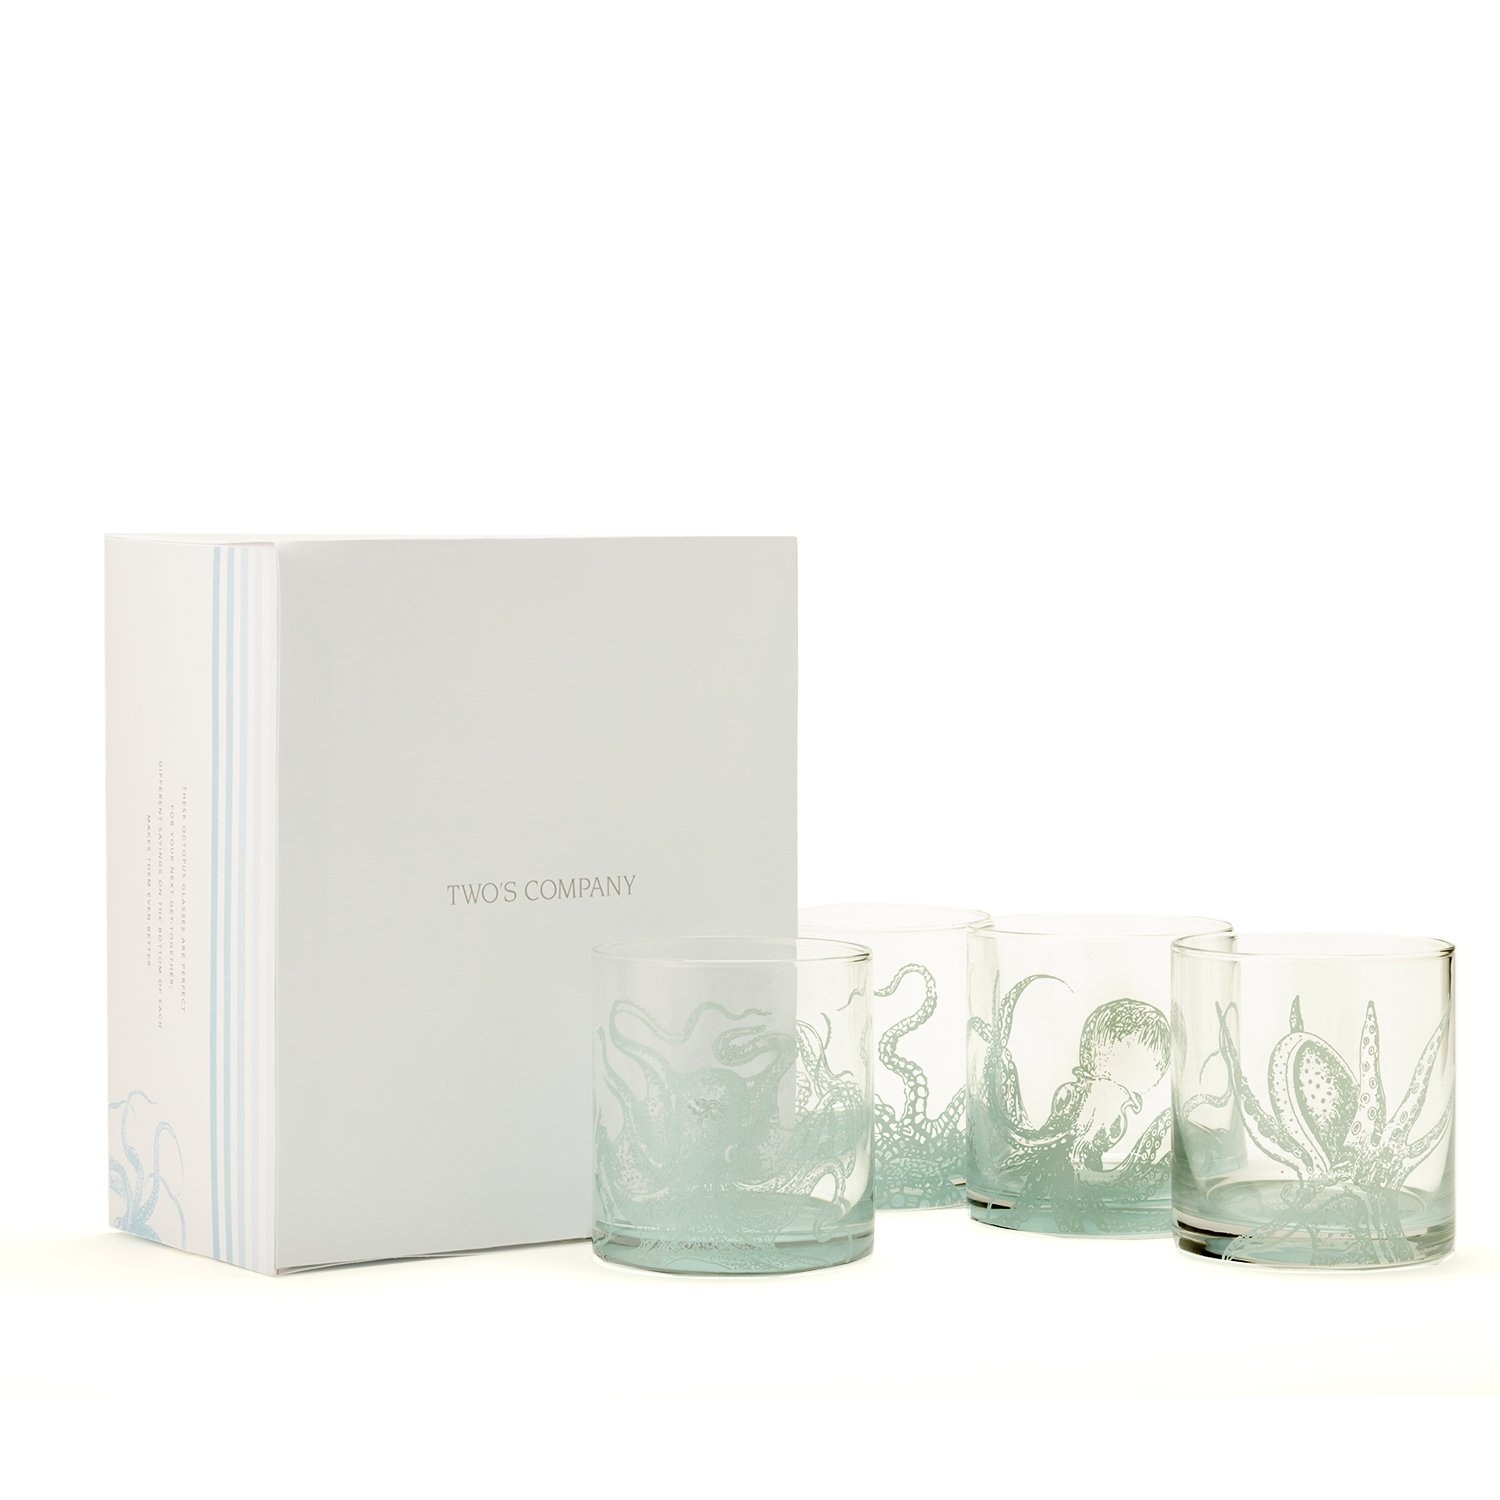 Two's Company 51522-EA Octopus Set of 4 double Old-Fashioned Glasses In Gift Box Includes 4 Designs - Glass, Clear